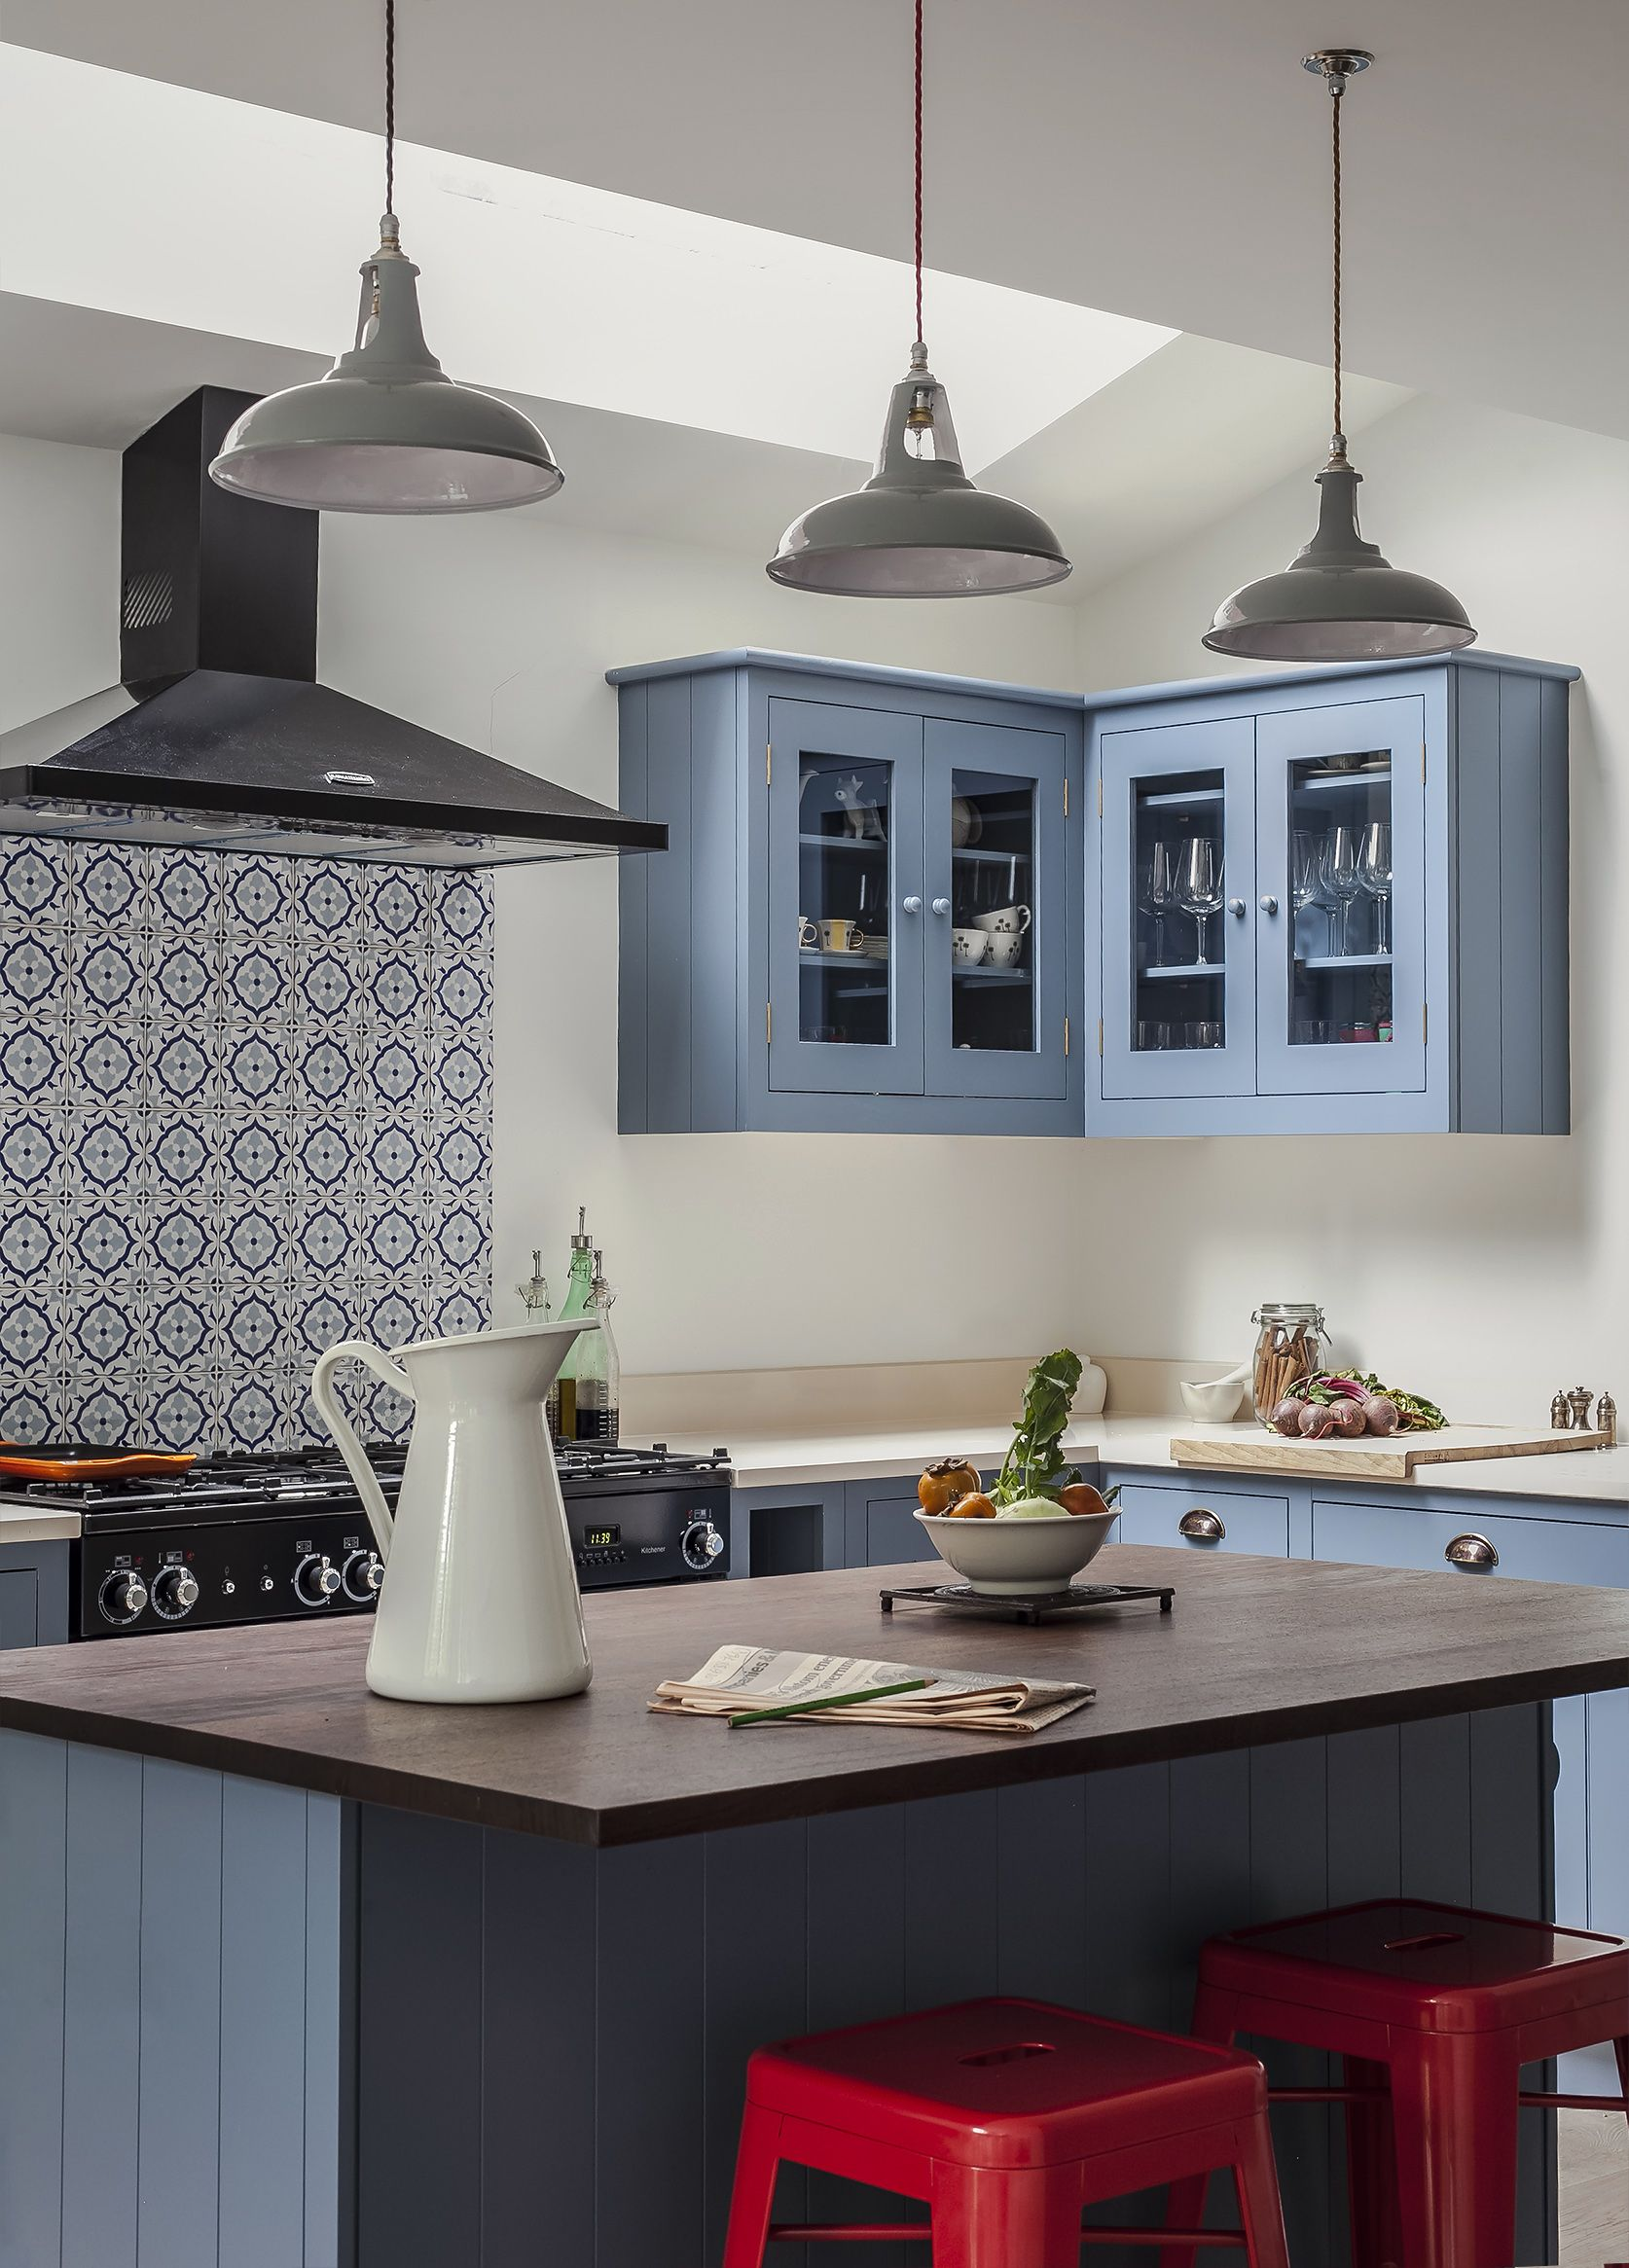 British Standard Cupboards painted in Dulux Niagra blue | BLUE ...